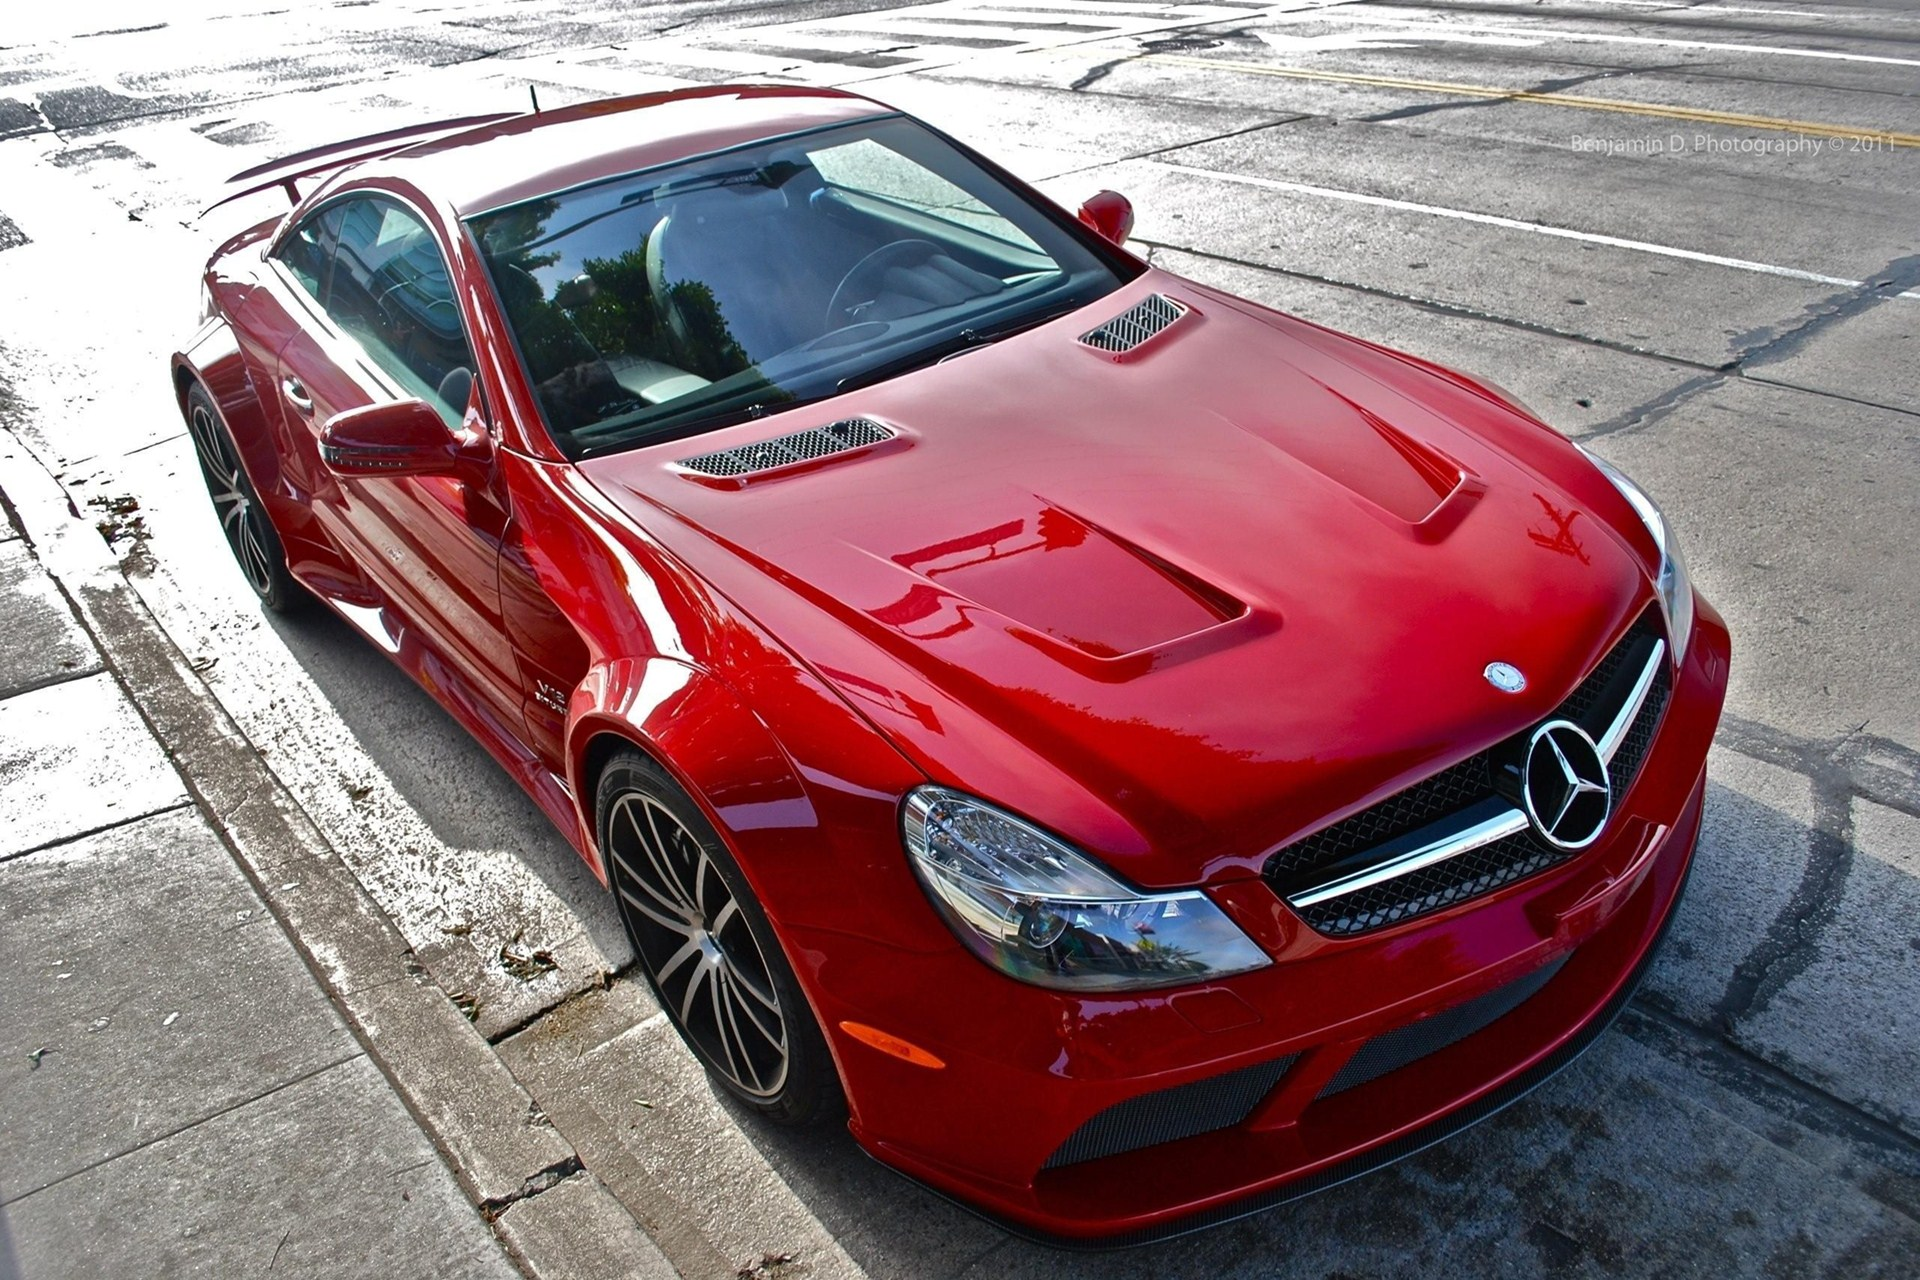 Mercedes-Benz Sl65 Amg Red Sports Car Wallpaper